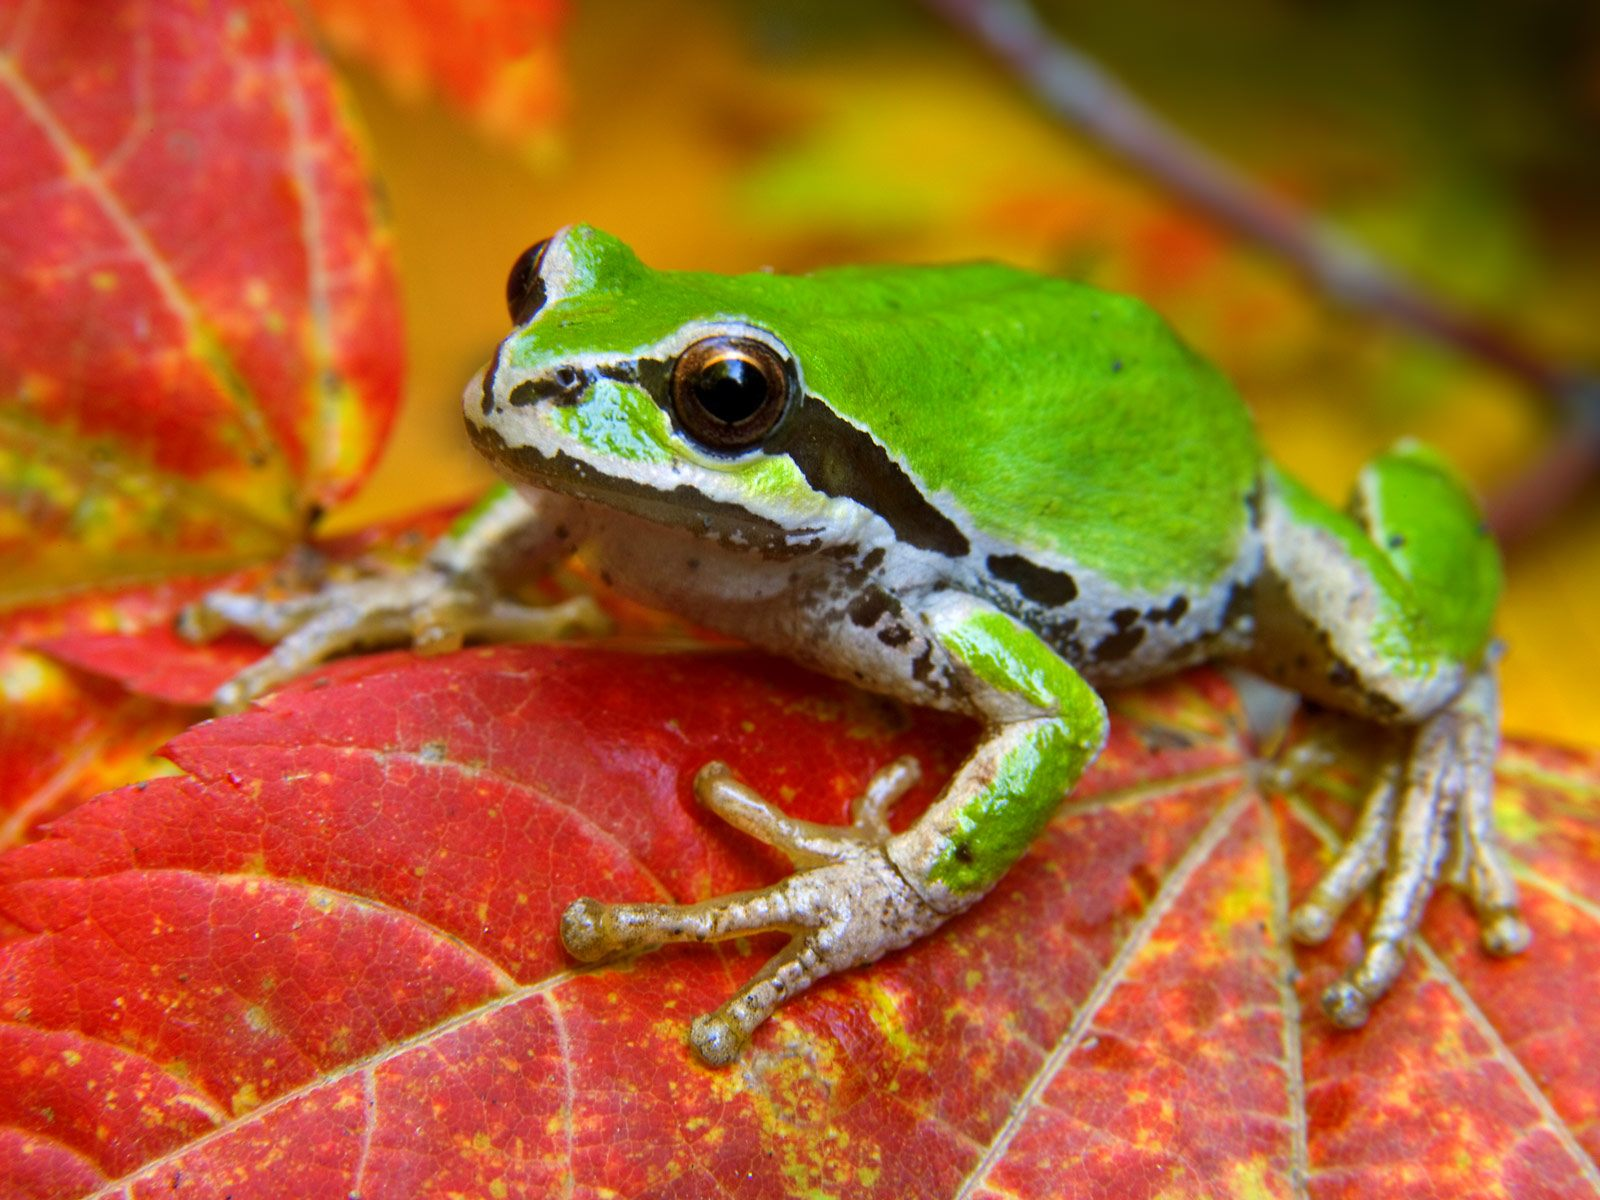 Animal - Frog  - Don Paulson - Autumn - Maple Leaf - National Parks - Washington - Olympic National Park - Green Tree Frog - Leaf Wallpaper